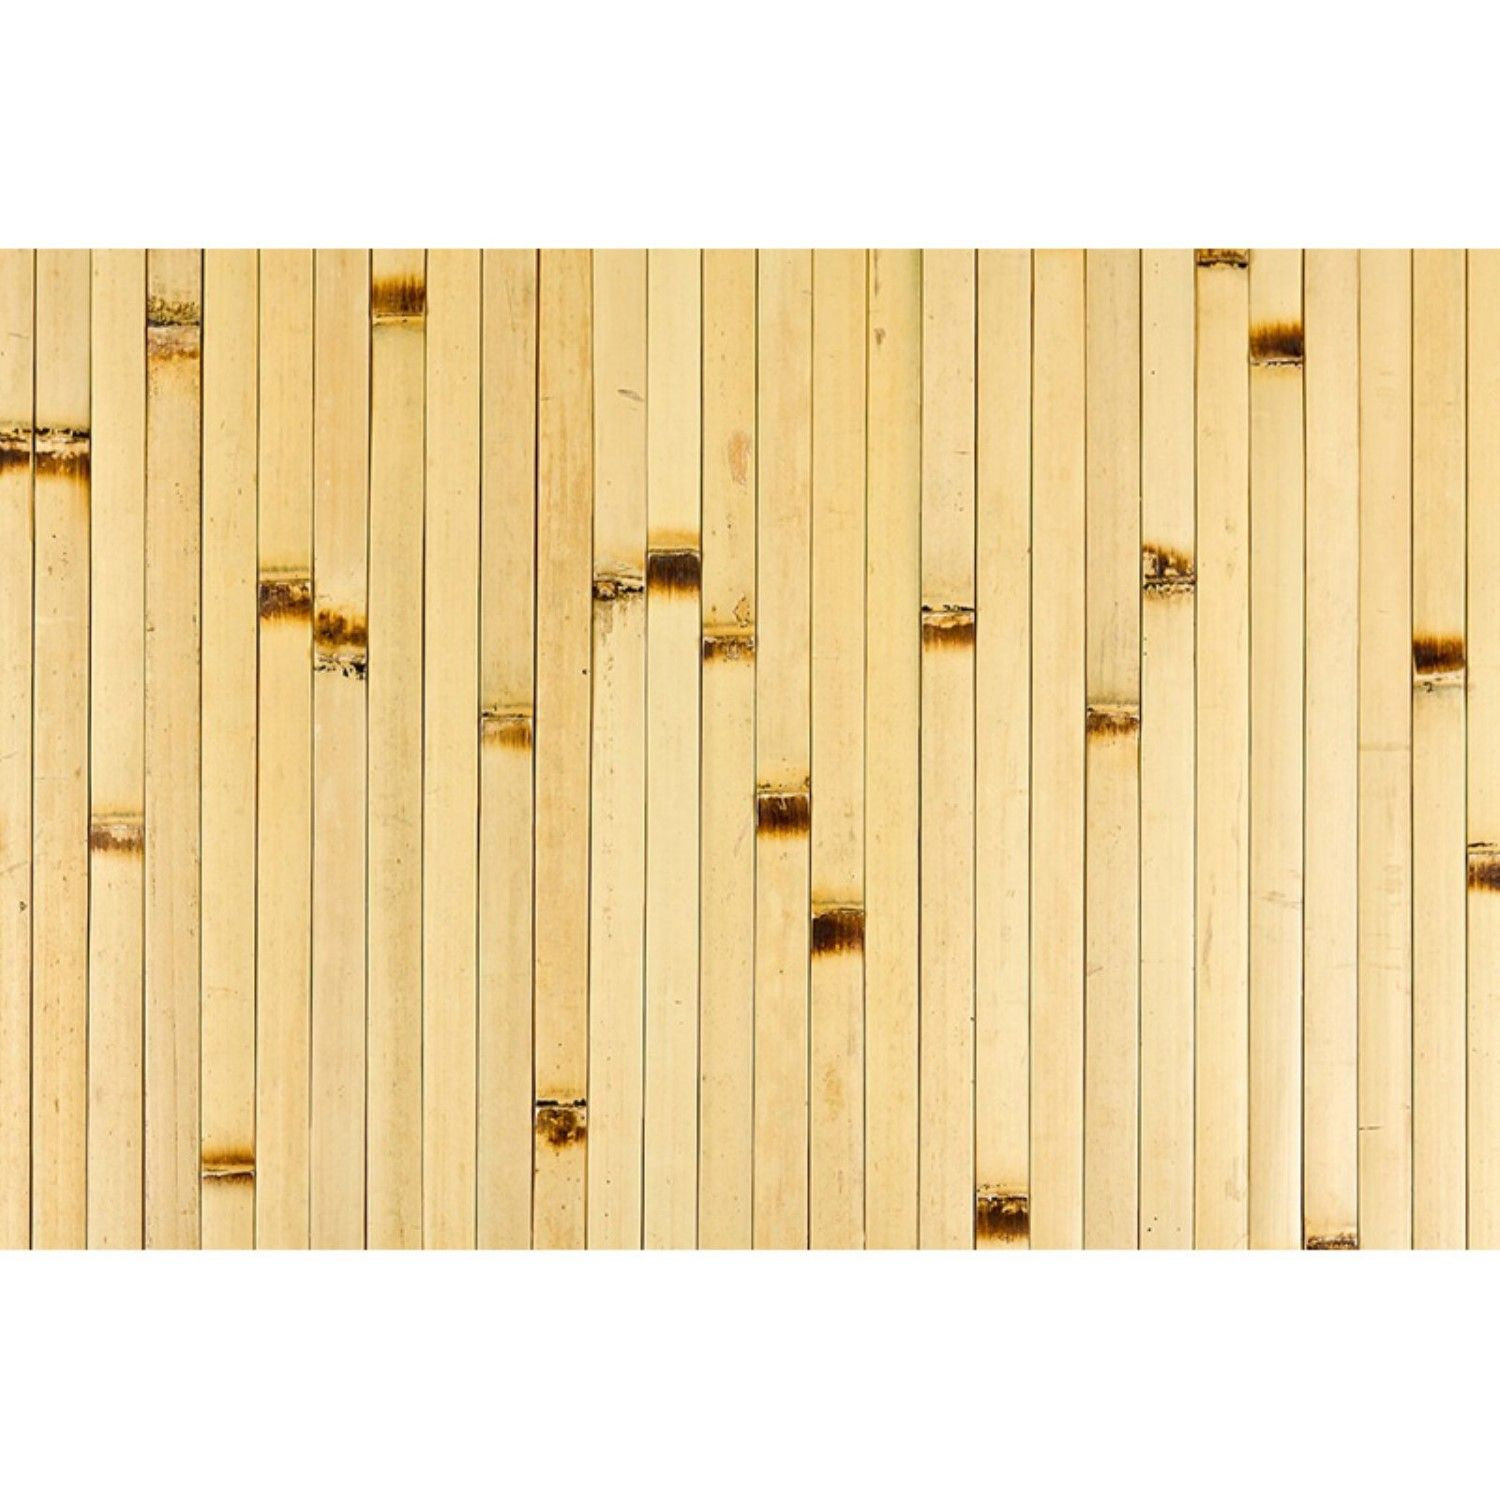 Forever Bamboo 4 x 8 ft. Bamboo Wall Paneling | Bamboo wall, Columns ...